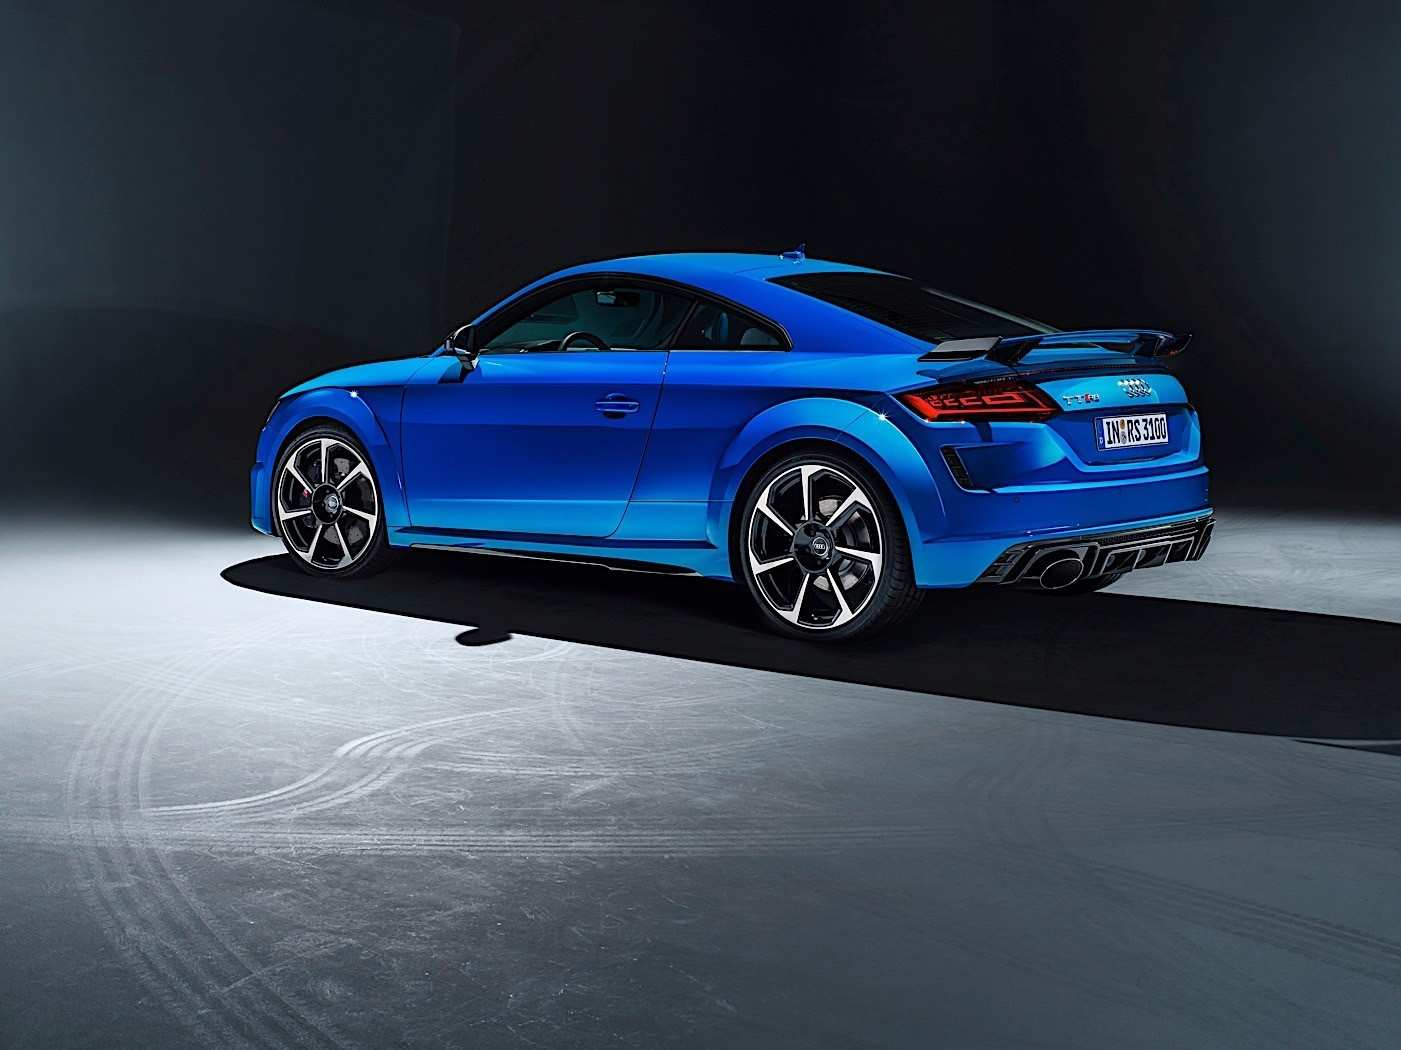 31 Best Review Audi Tt Rs 2020 Youtube Concept with Audi Tt Rs 2020 Youtube